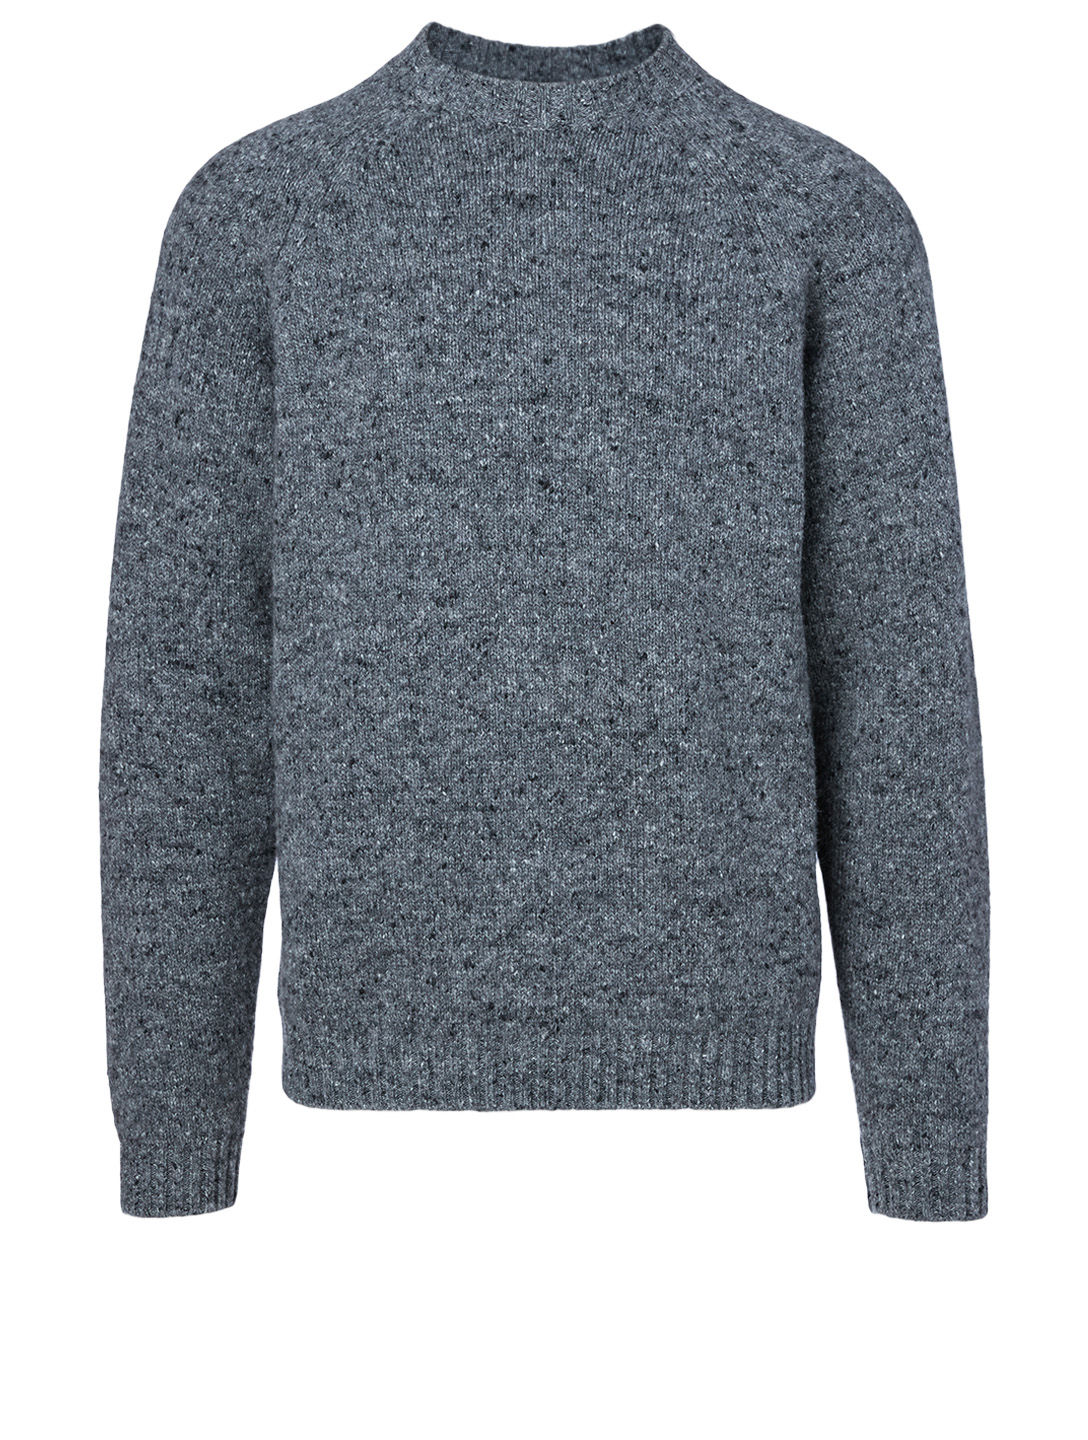 THE ROW Ezra Camel Hair Sweater Men's Grey